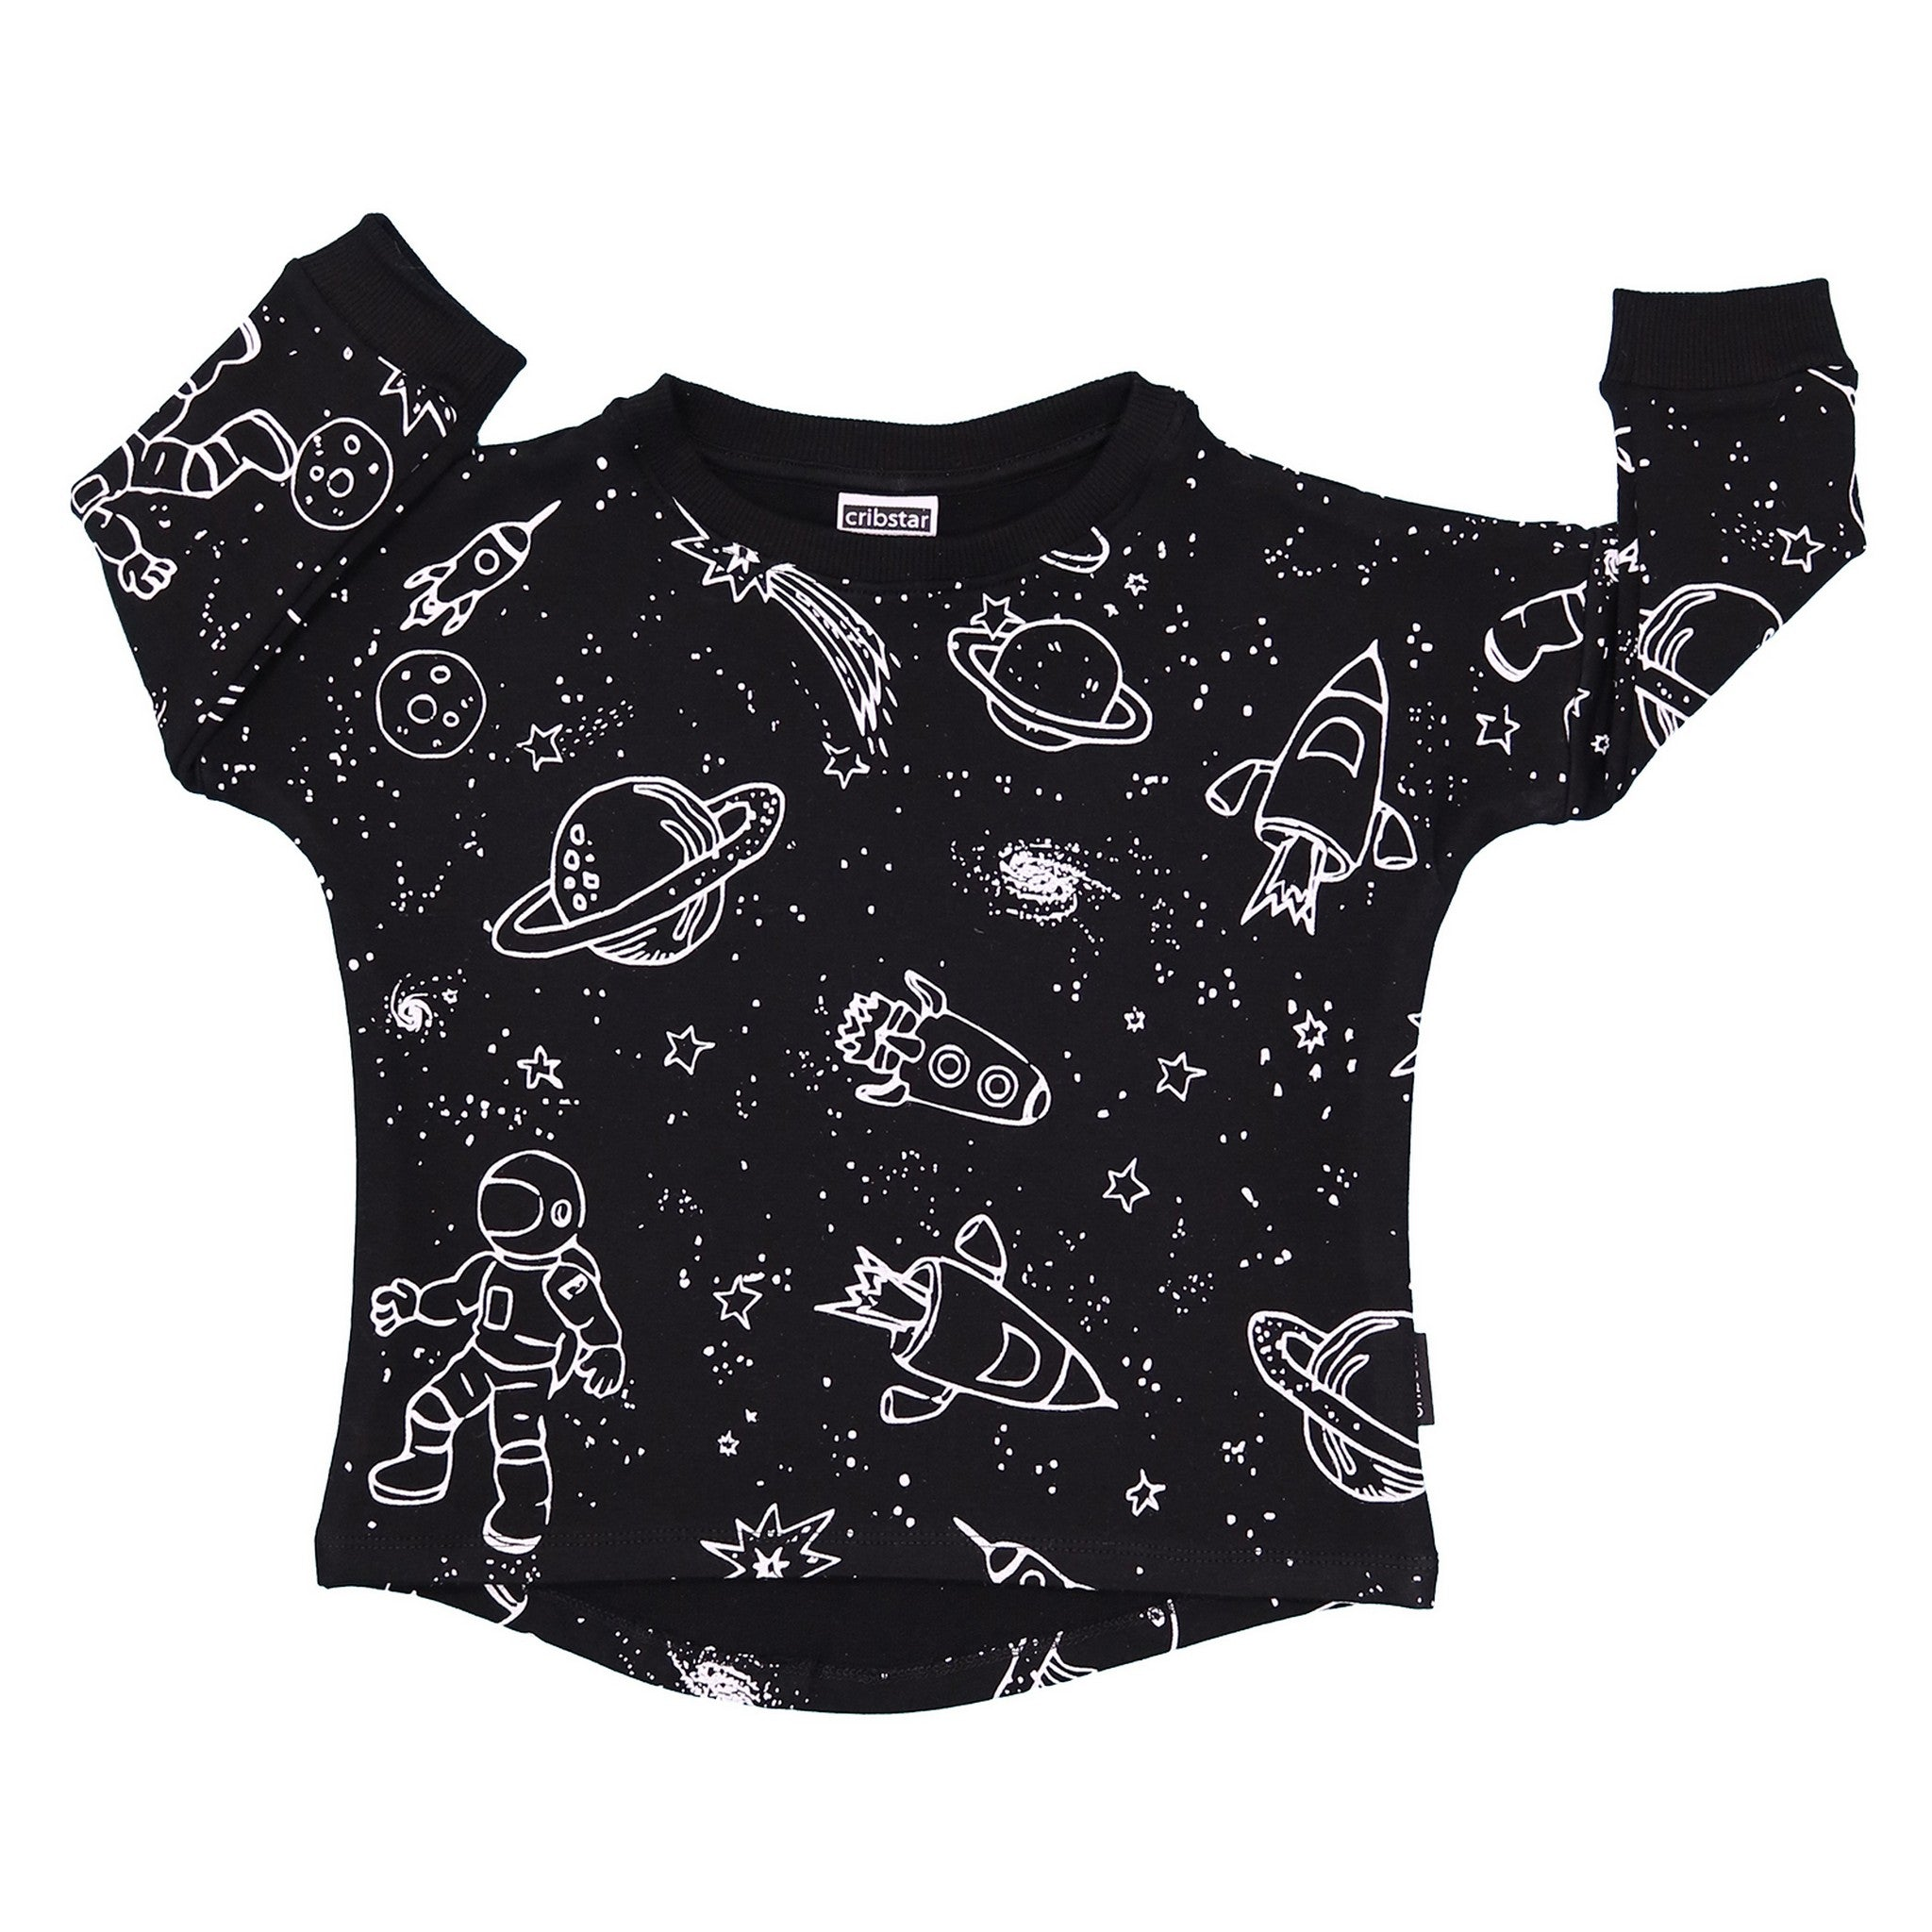 BAMBINISTA - CRIBSTAR - Tops - Space Sweatshirt